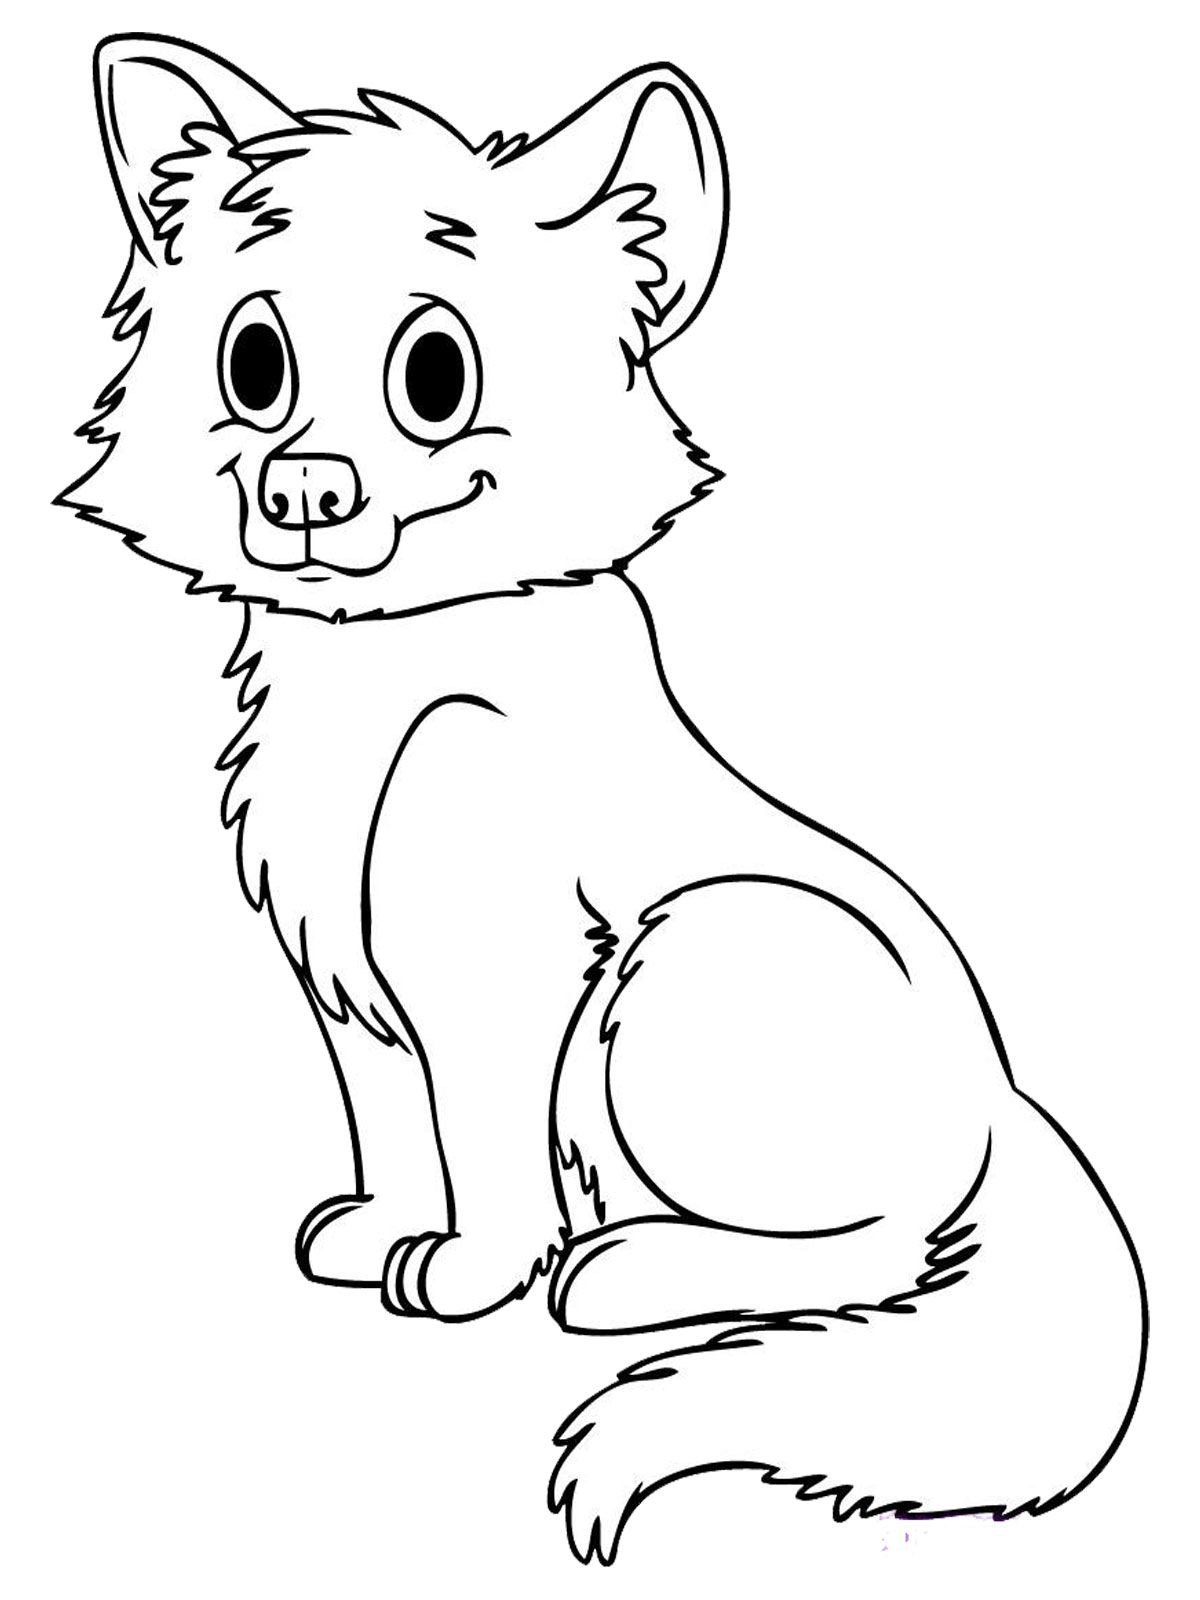 Printable coloring pages animal jam - Baby Farm Animal Coloring Pages Baby Animal Coloring Pages Realistic